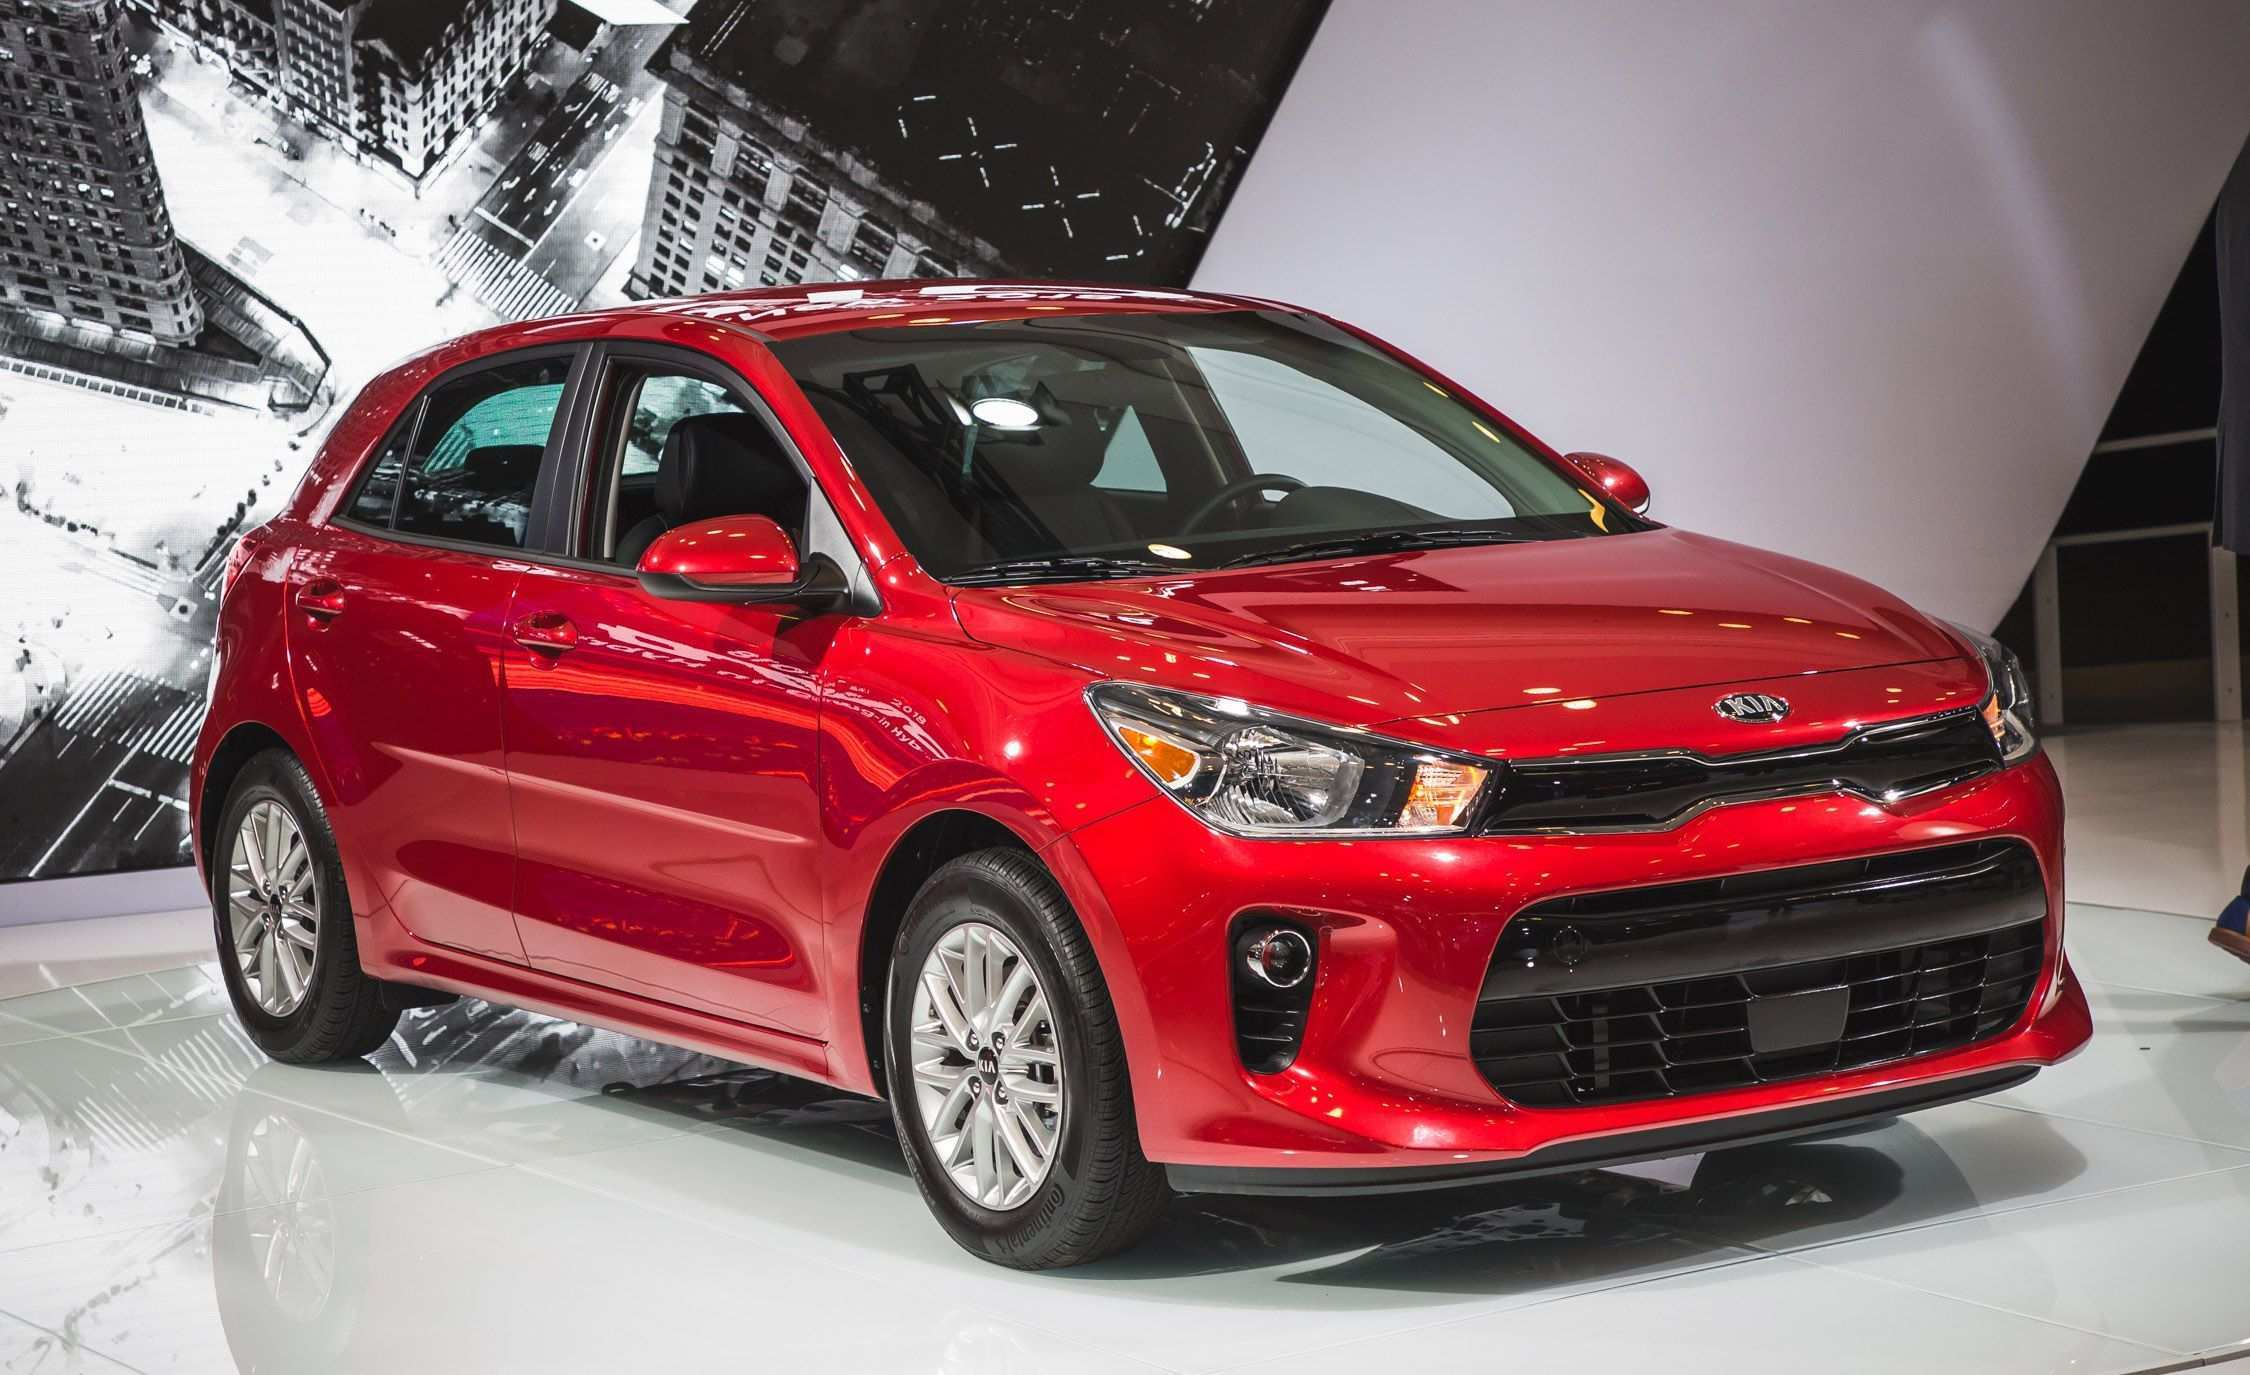 93 Great 2020 Kia Rio Performance and New Engine with 2020 Kia Rio